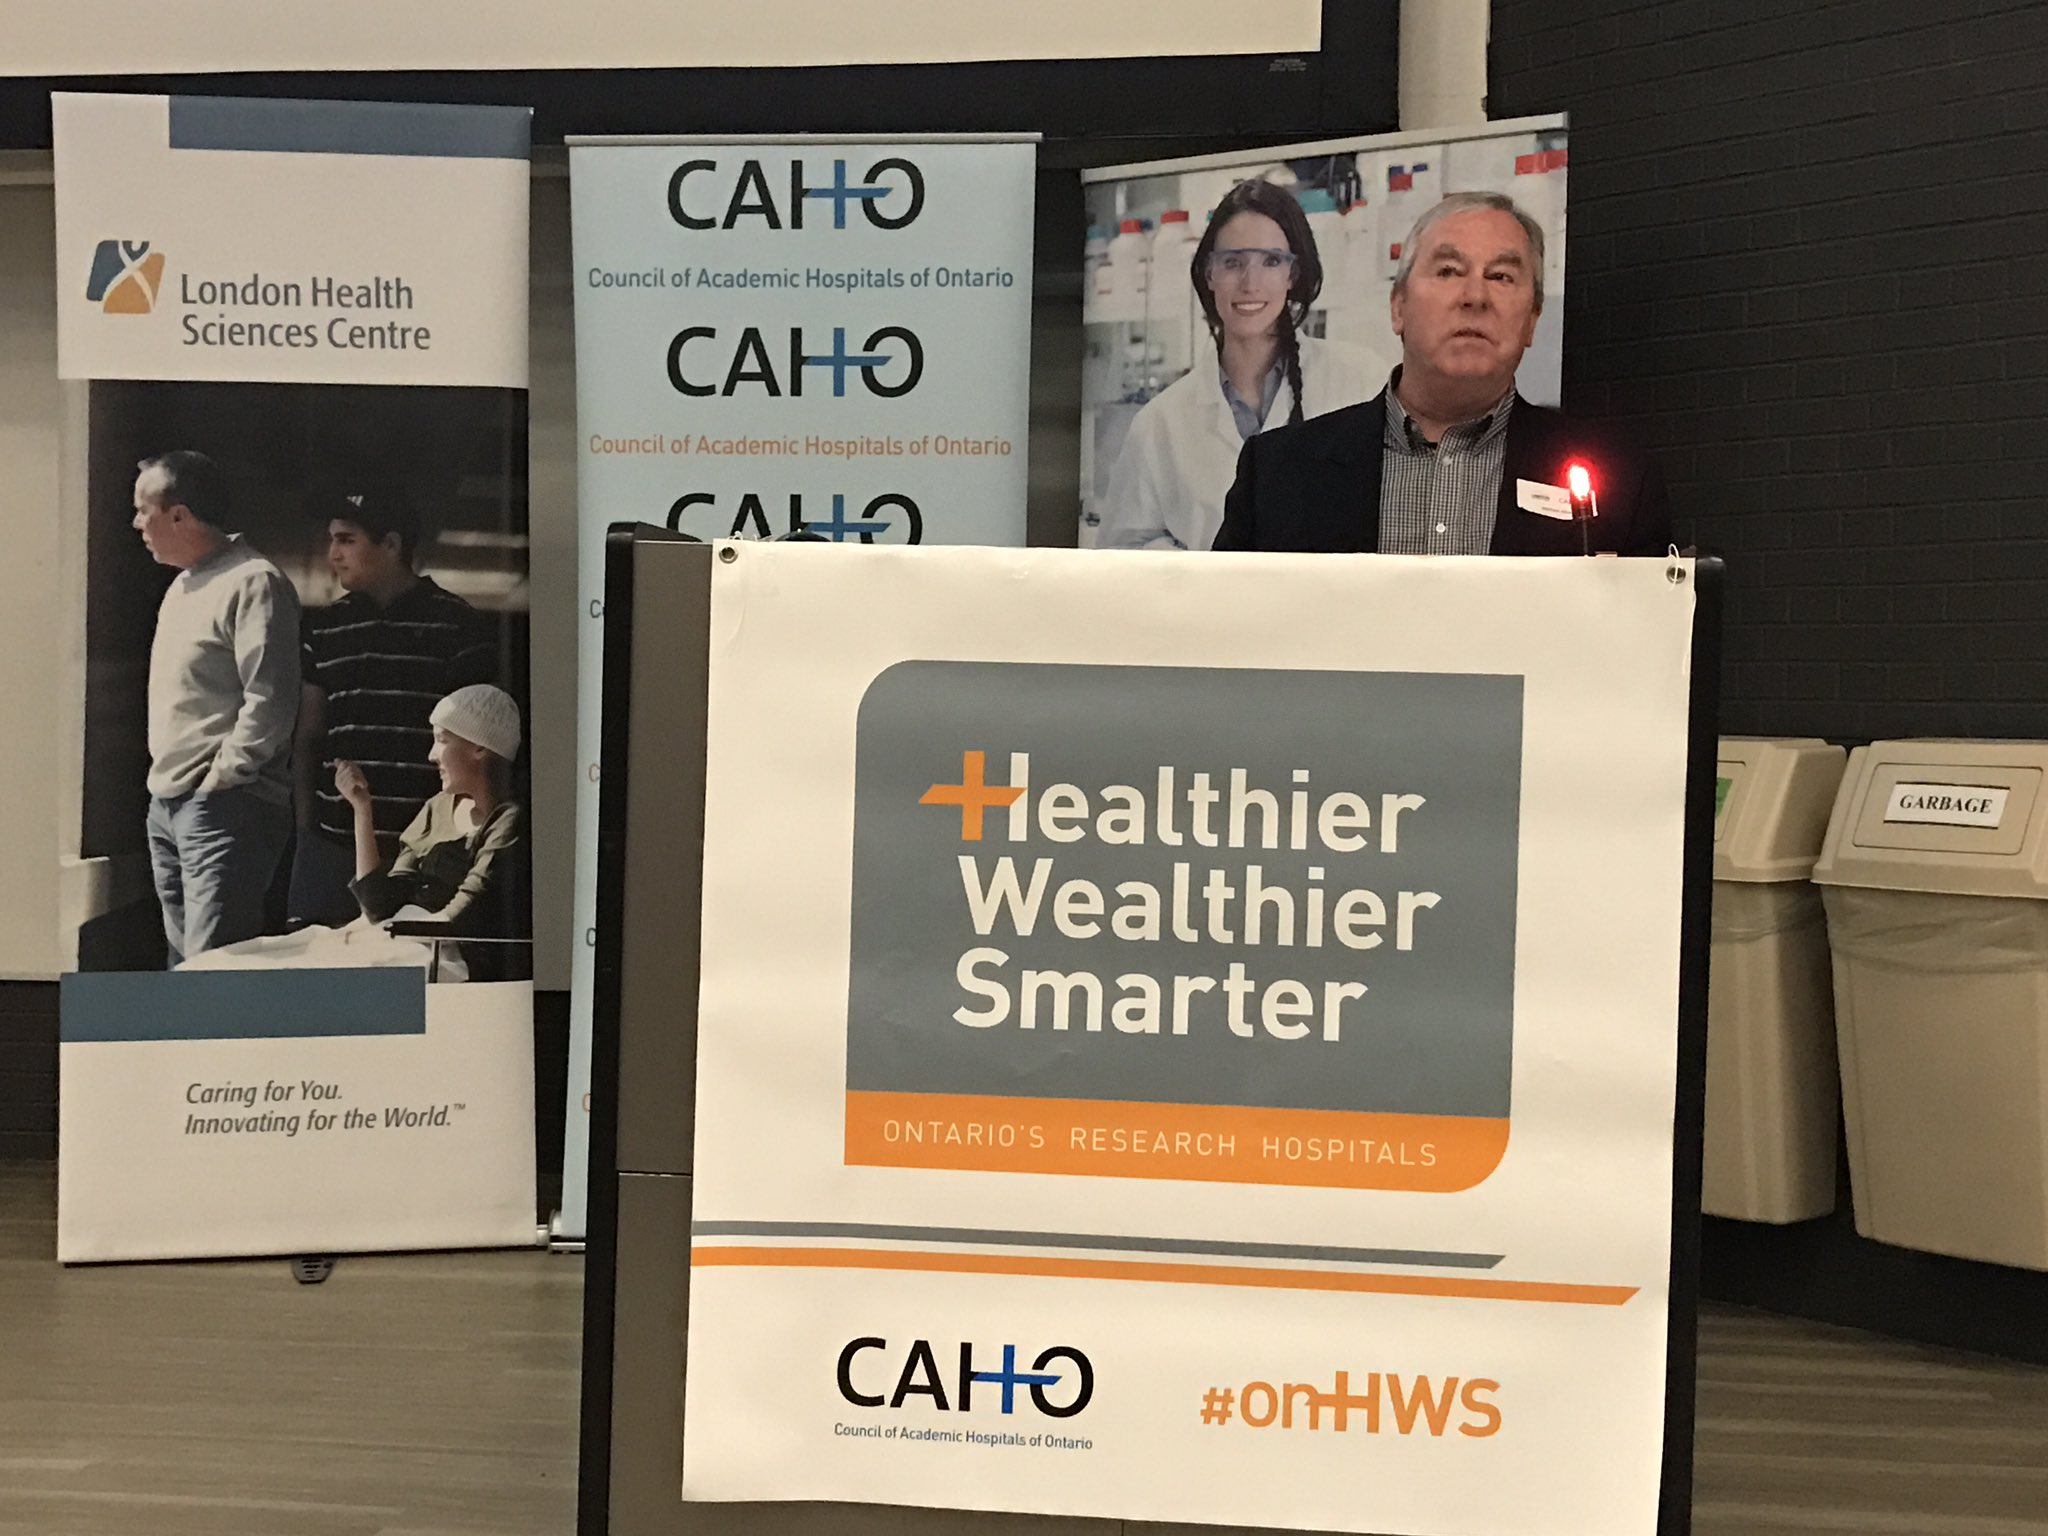 Michael Allen is a 2-time cancer survivor who participated in our personalized medicine research program. #onhws @LHSCCanada https://t.co/iLHfflM60j